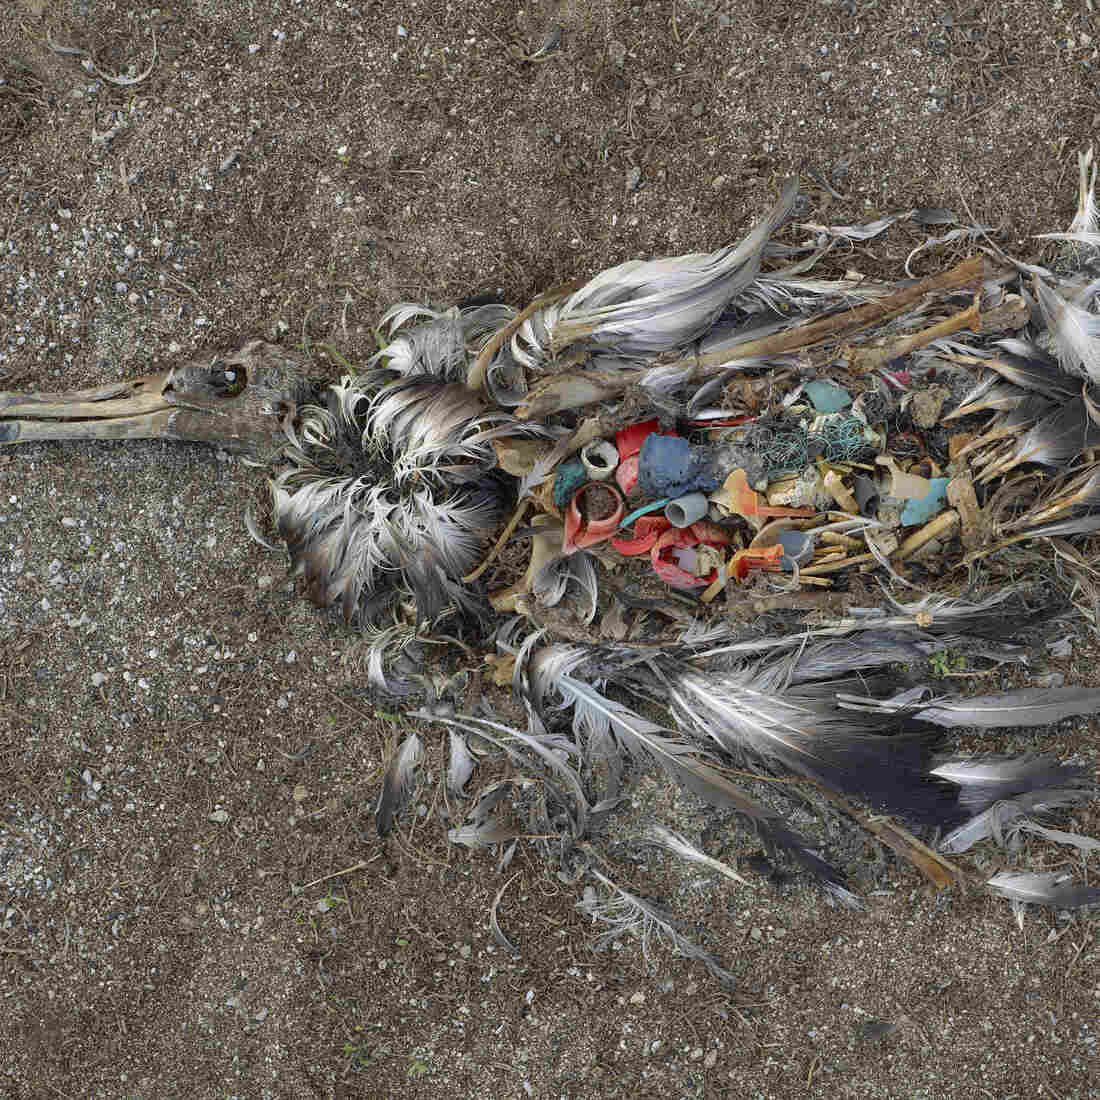 A dead young albatross on the Midway Atoll in the Pacific Ocean. You can see more of photographer Chris Jordan's work on the effects of plastics on seabirds at The Picture Show.